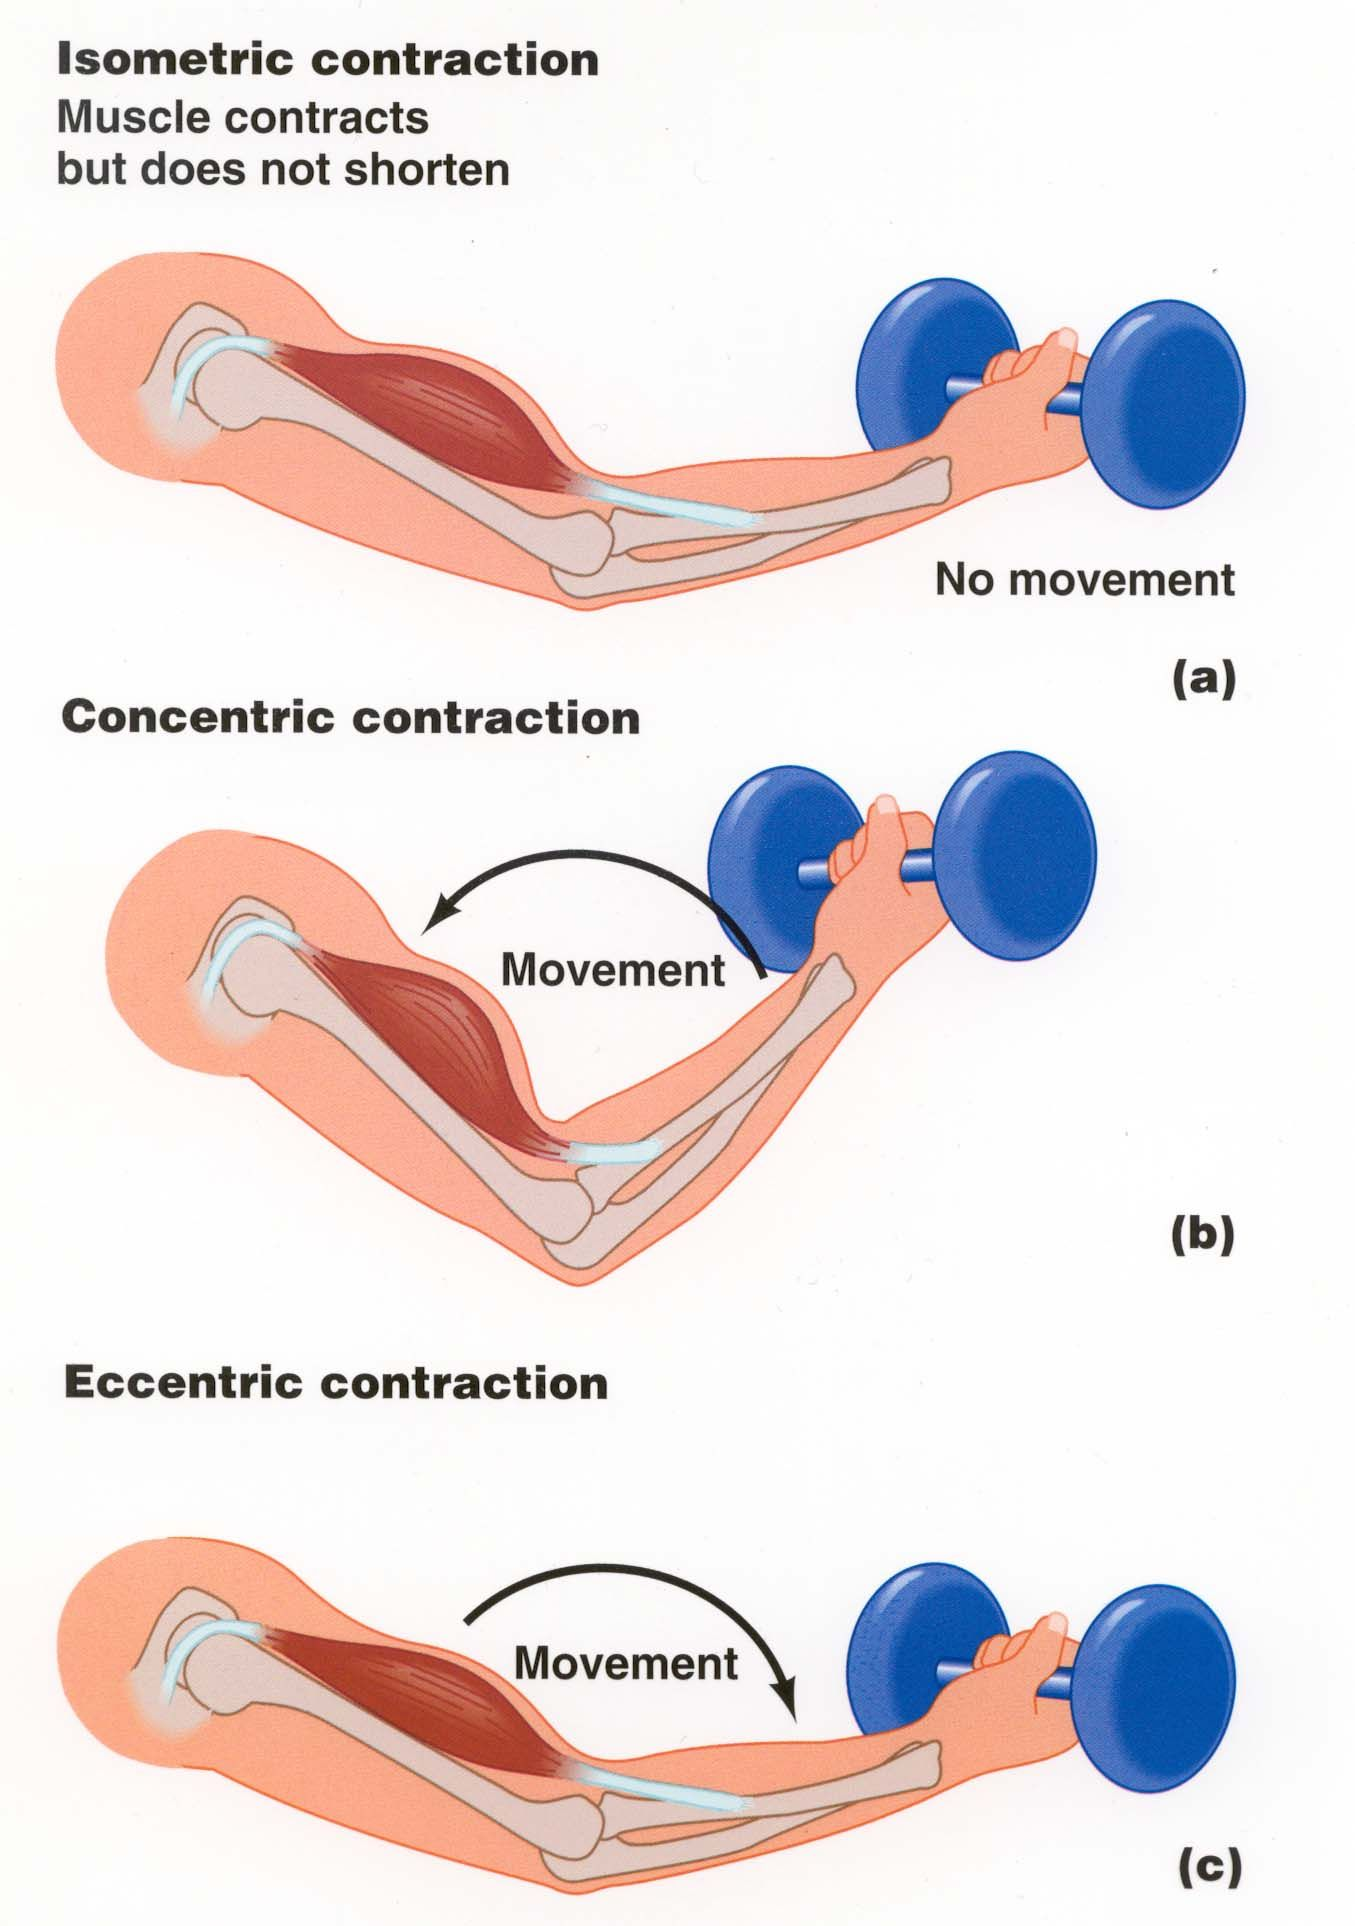 There are three types of muscle contractions - isometric, concentric ...